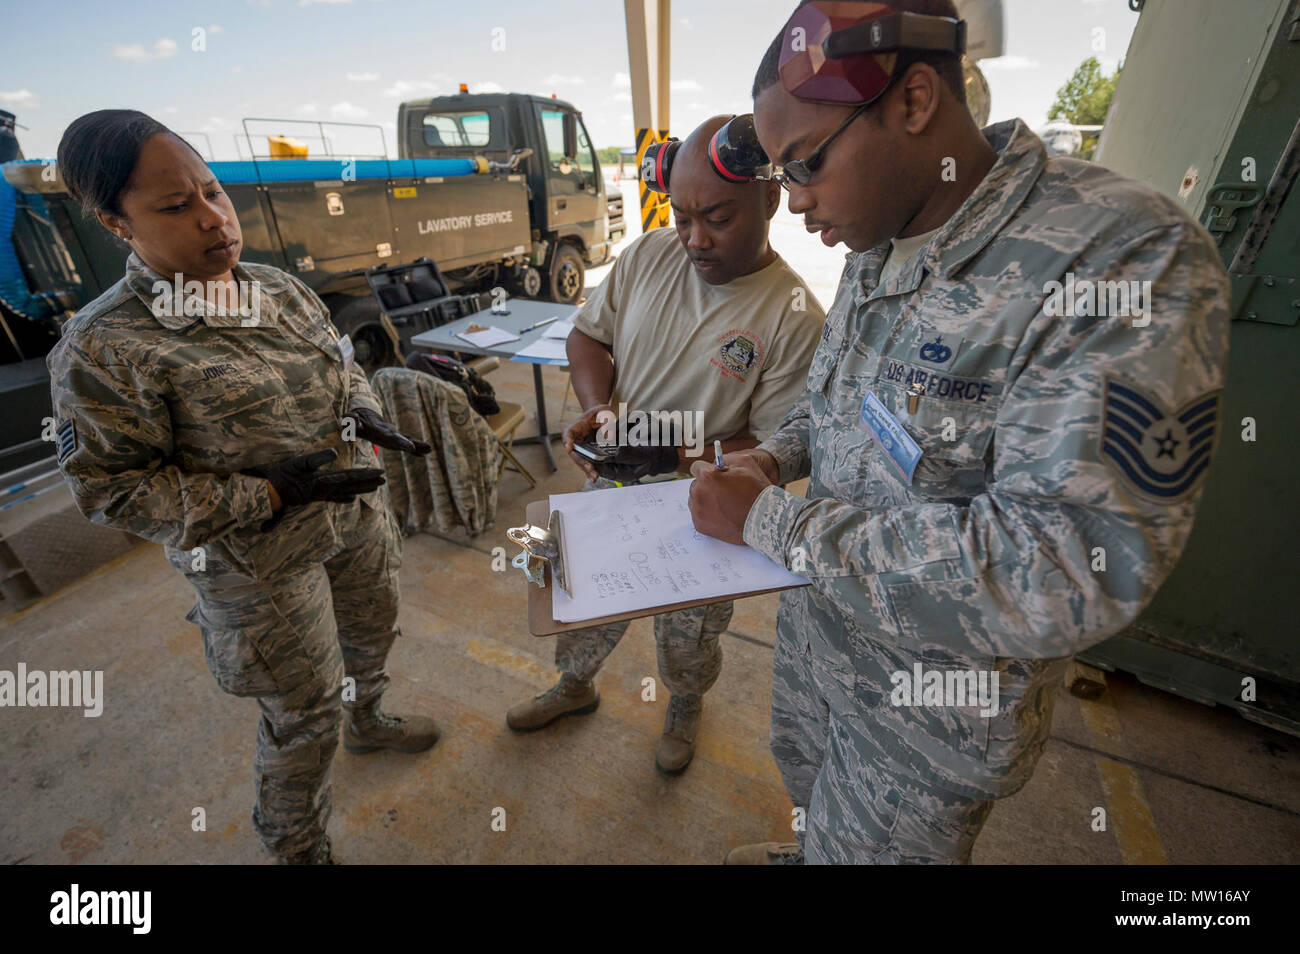 c3eaa1553dcba From left, U.S. Air Force Staff Sgt. Alexia Jones and Tech. Sgts. Eric  Harmon and Alfred Little review cargo calculations during a joint  inspection cargo ...